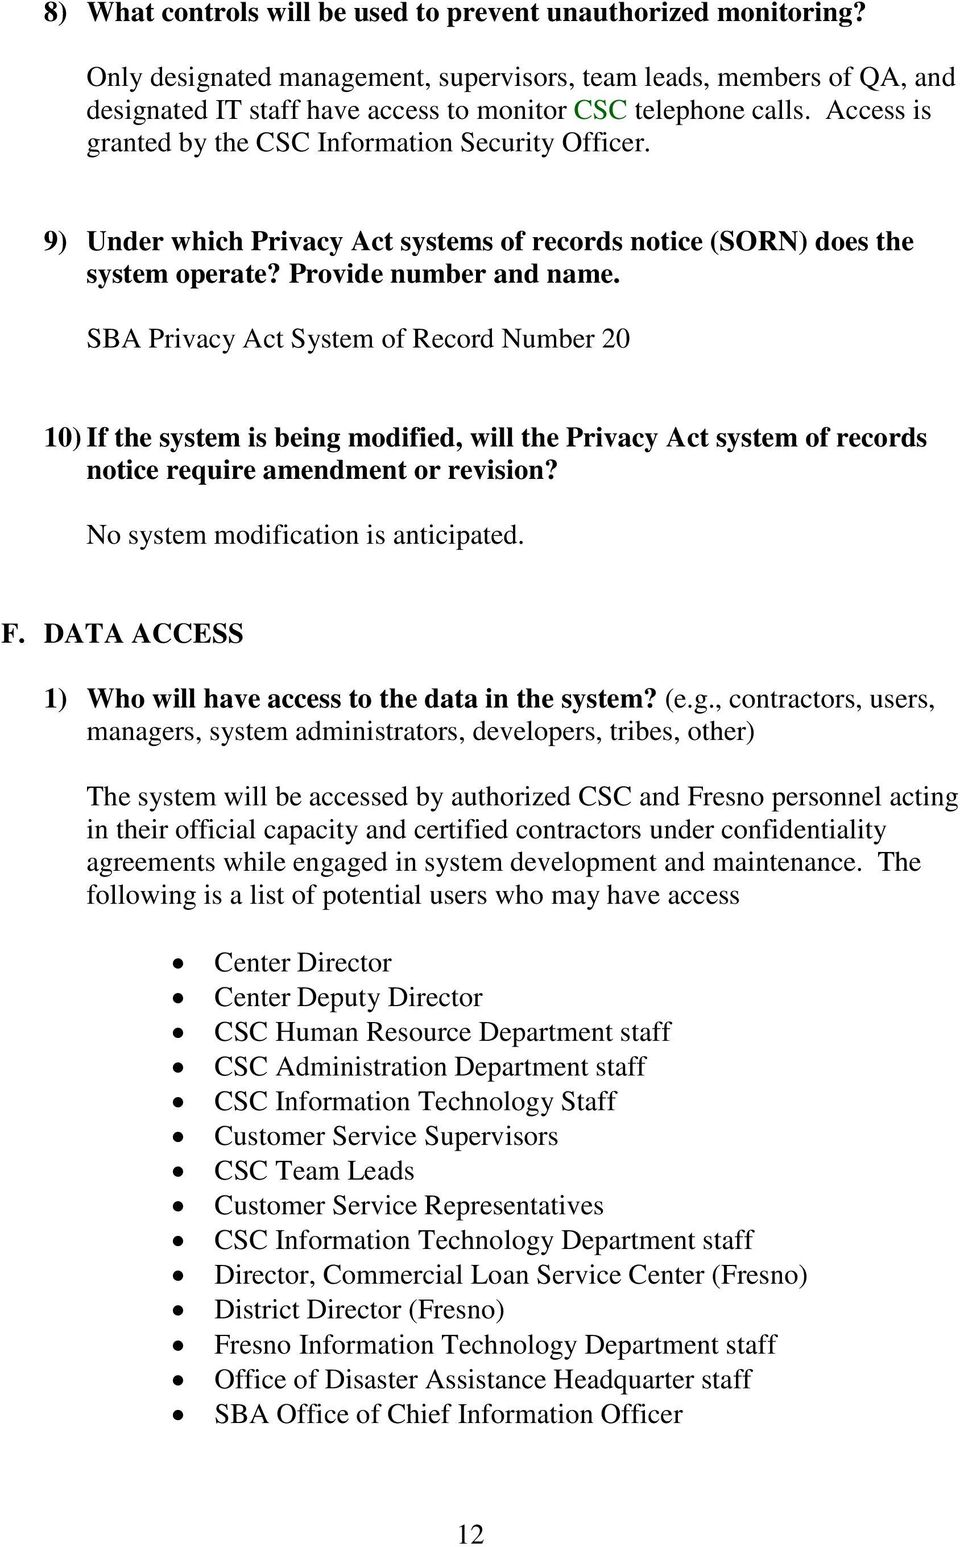 SBA Privacy Act System of Record Number 20 10) If the system is being modified, will the Privacy Act system of records notice require amendment or revision? No system modification is anticipated. F.